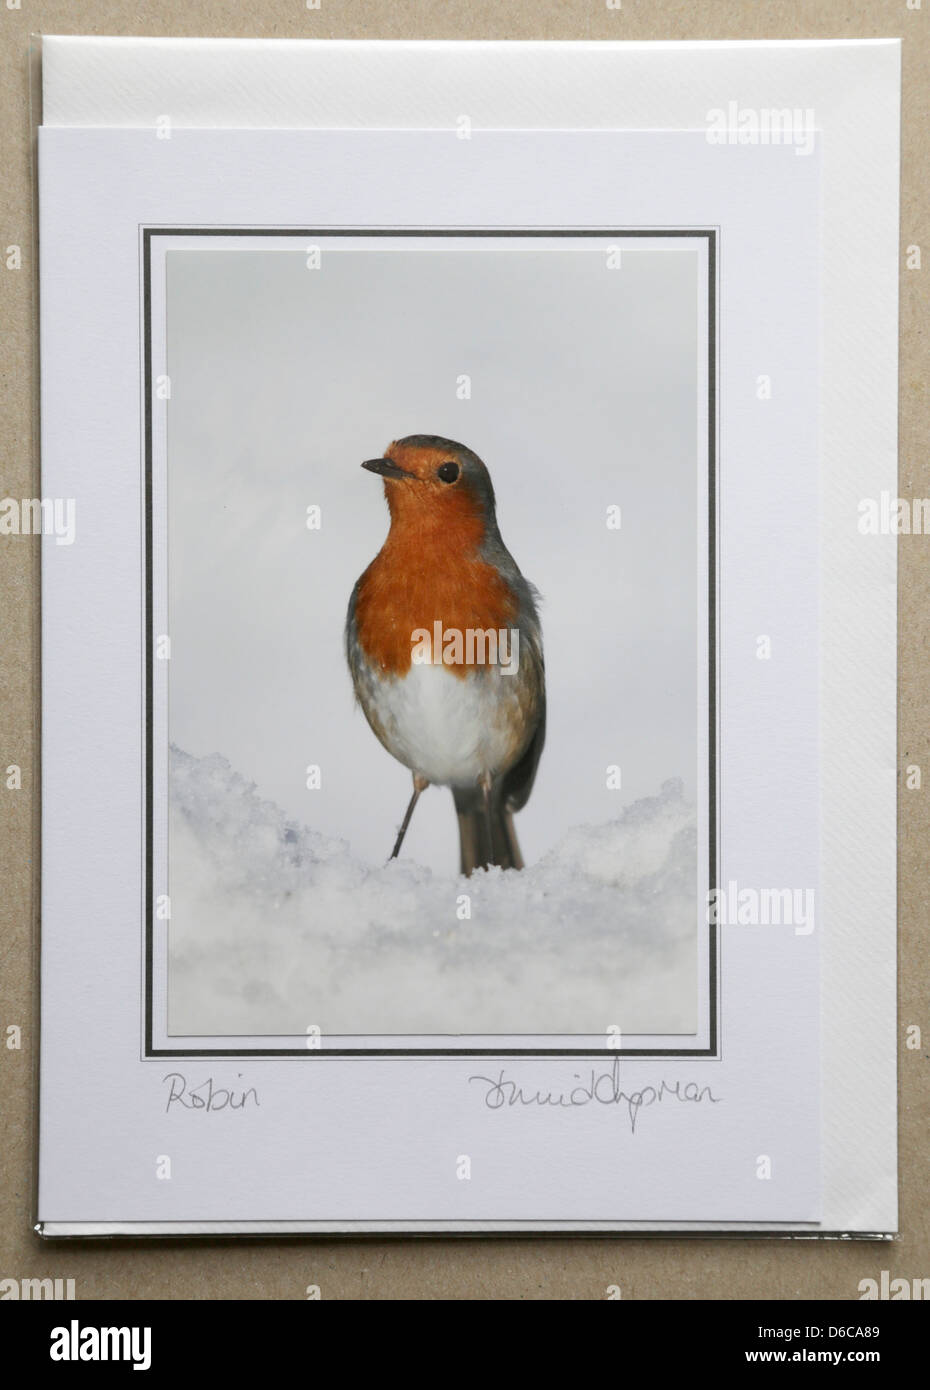 Greetings Card with Robin Picture; by David Chapman Stock Photo